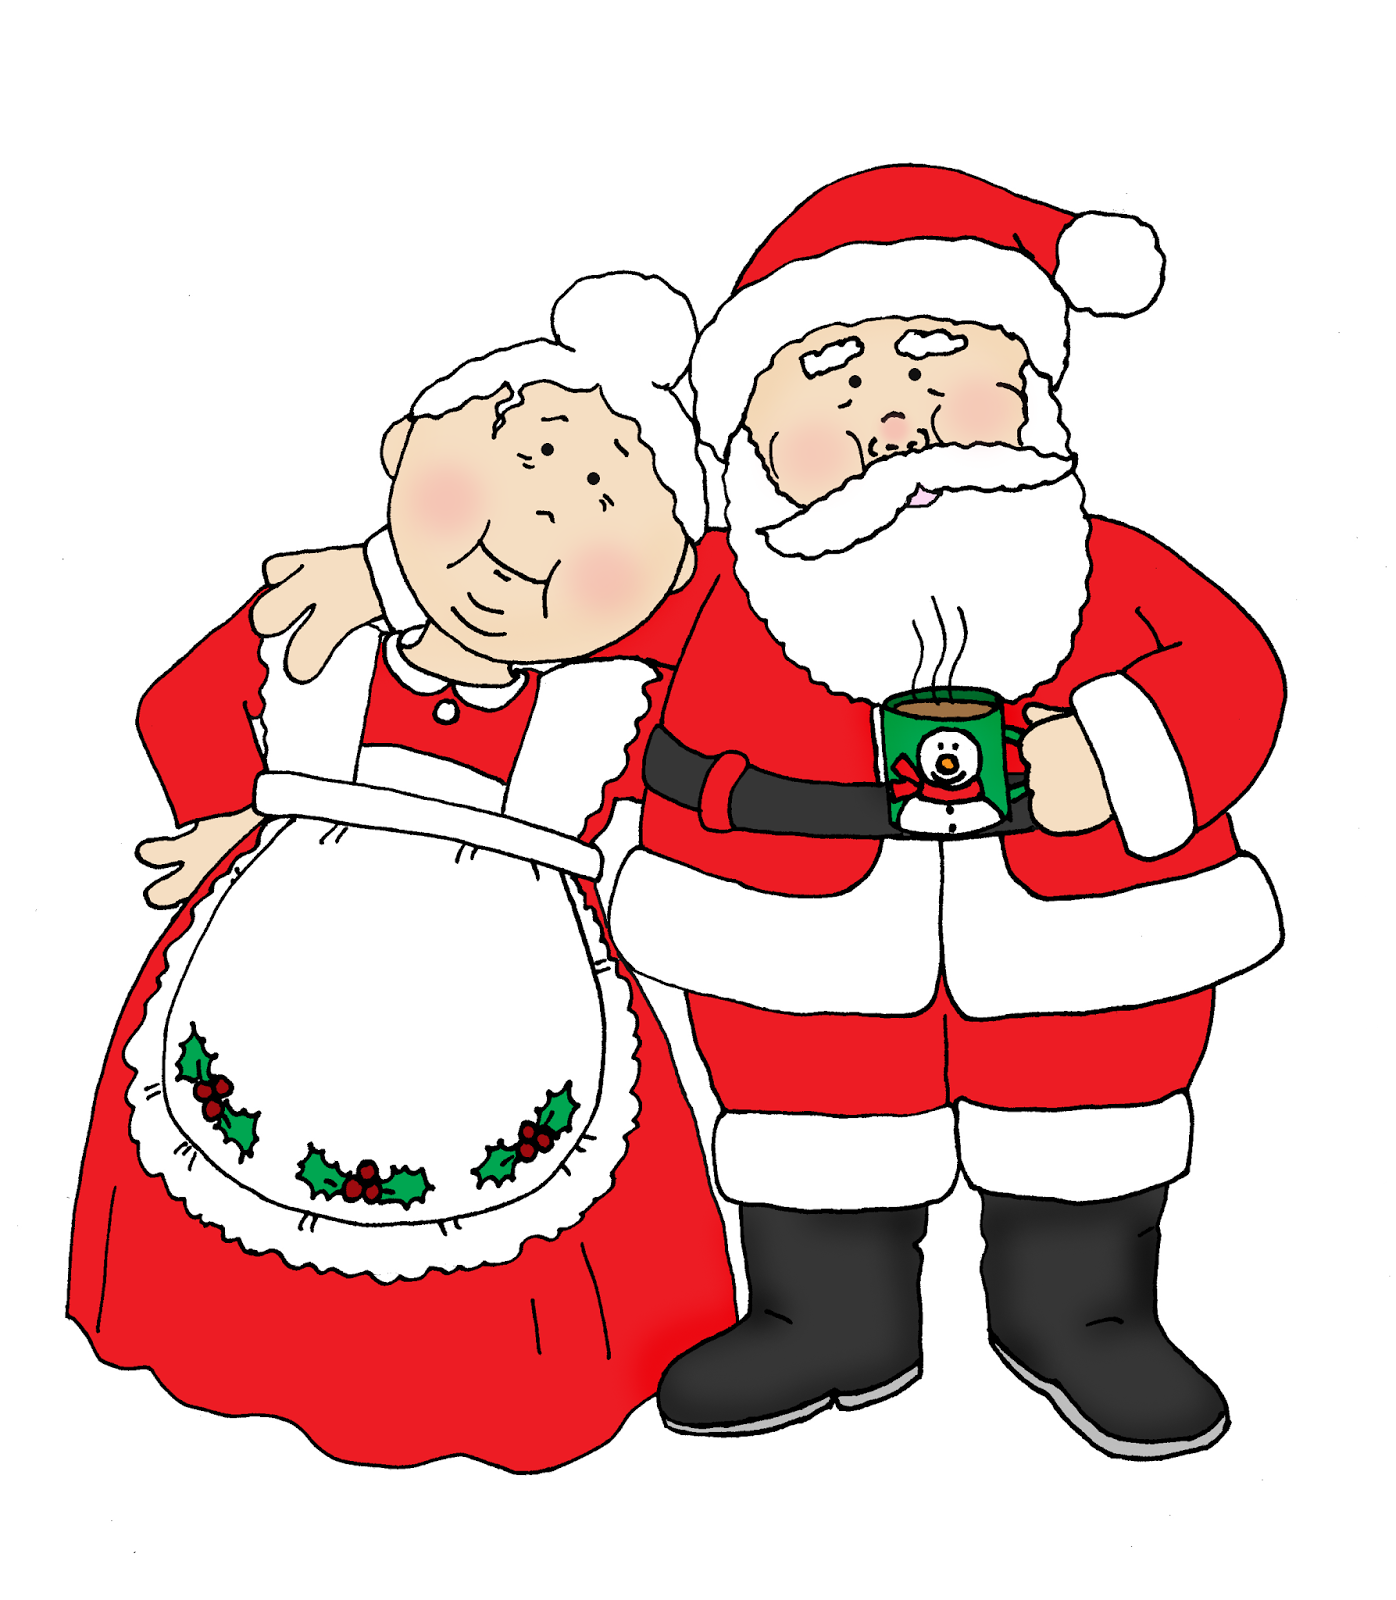 santa and mrs claus png transparent santa and mrs claus png images rh pluspng com mrs santa claus clipart mrs claus kitchen clipart